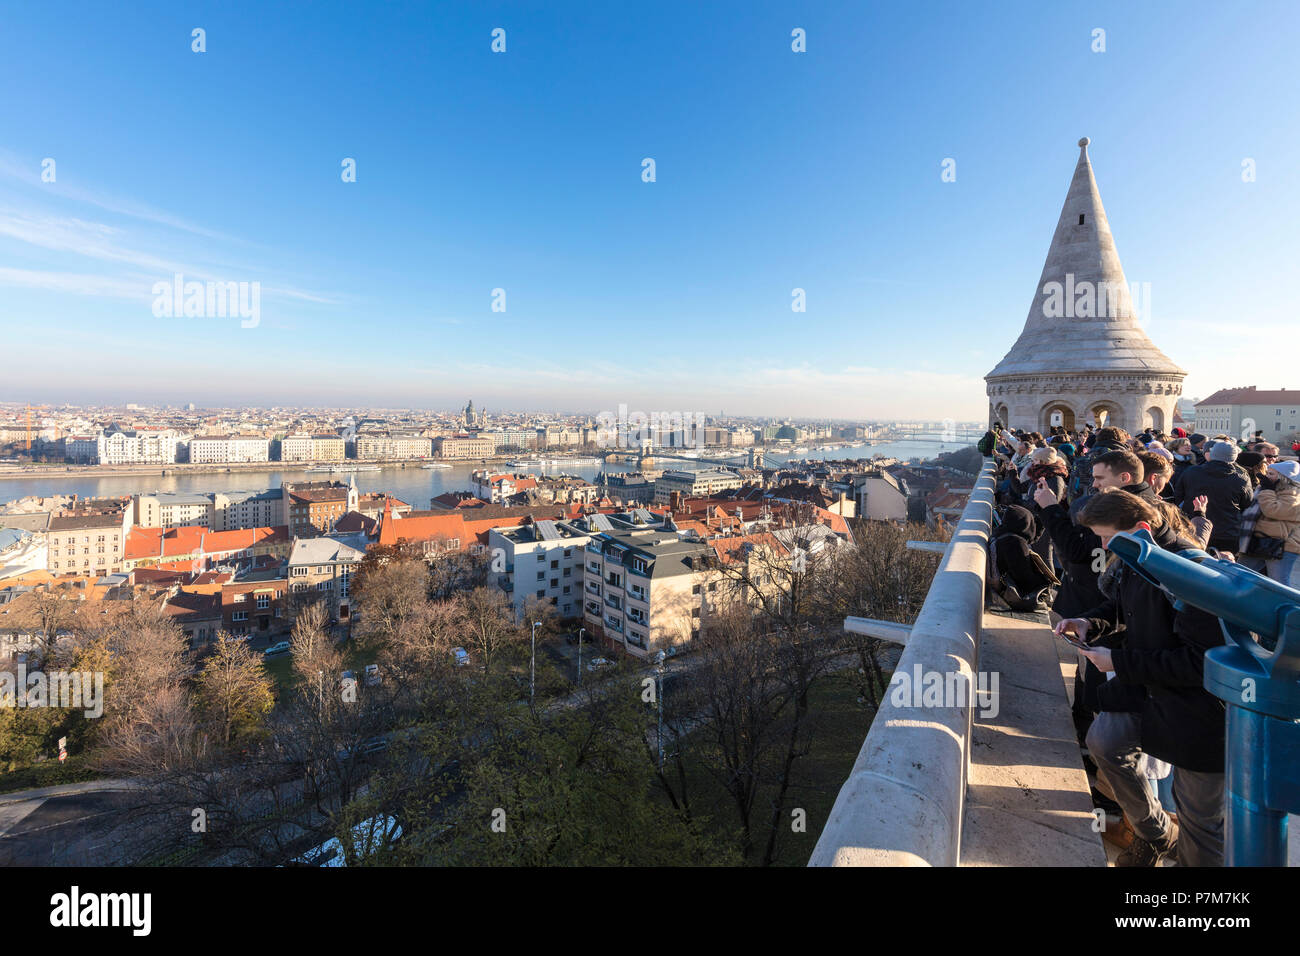 People on terrace of Fisherman's Bastion, Budapest, Hungary - Stock Image